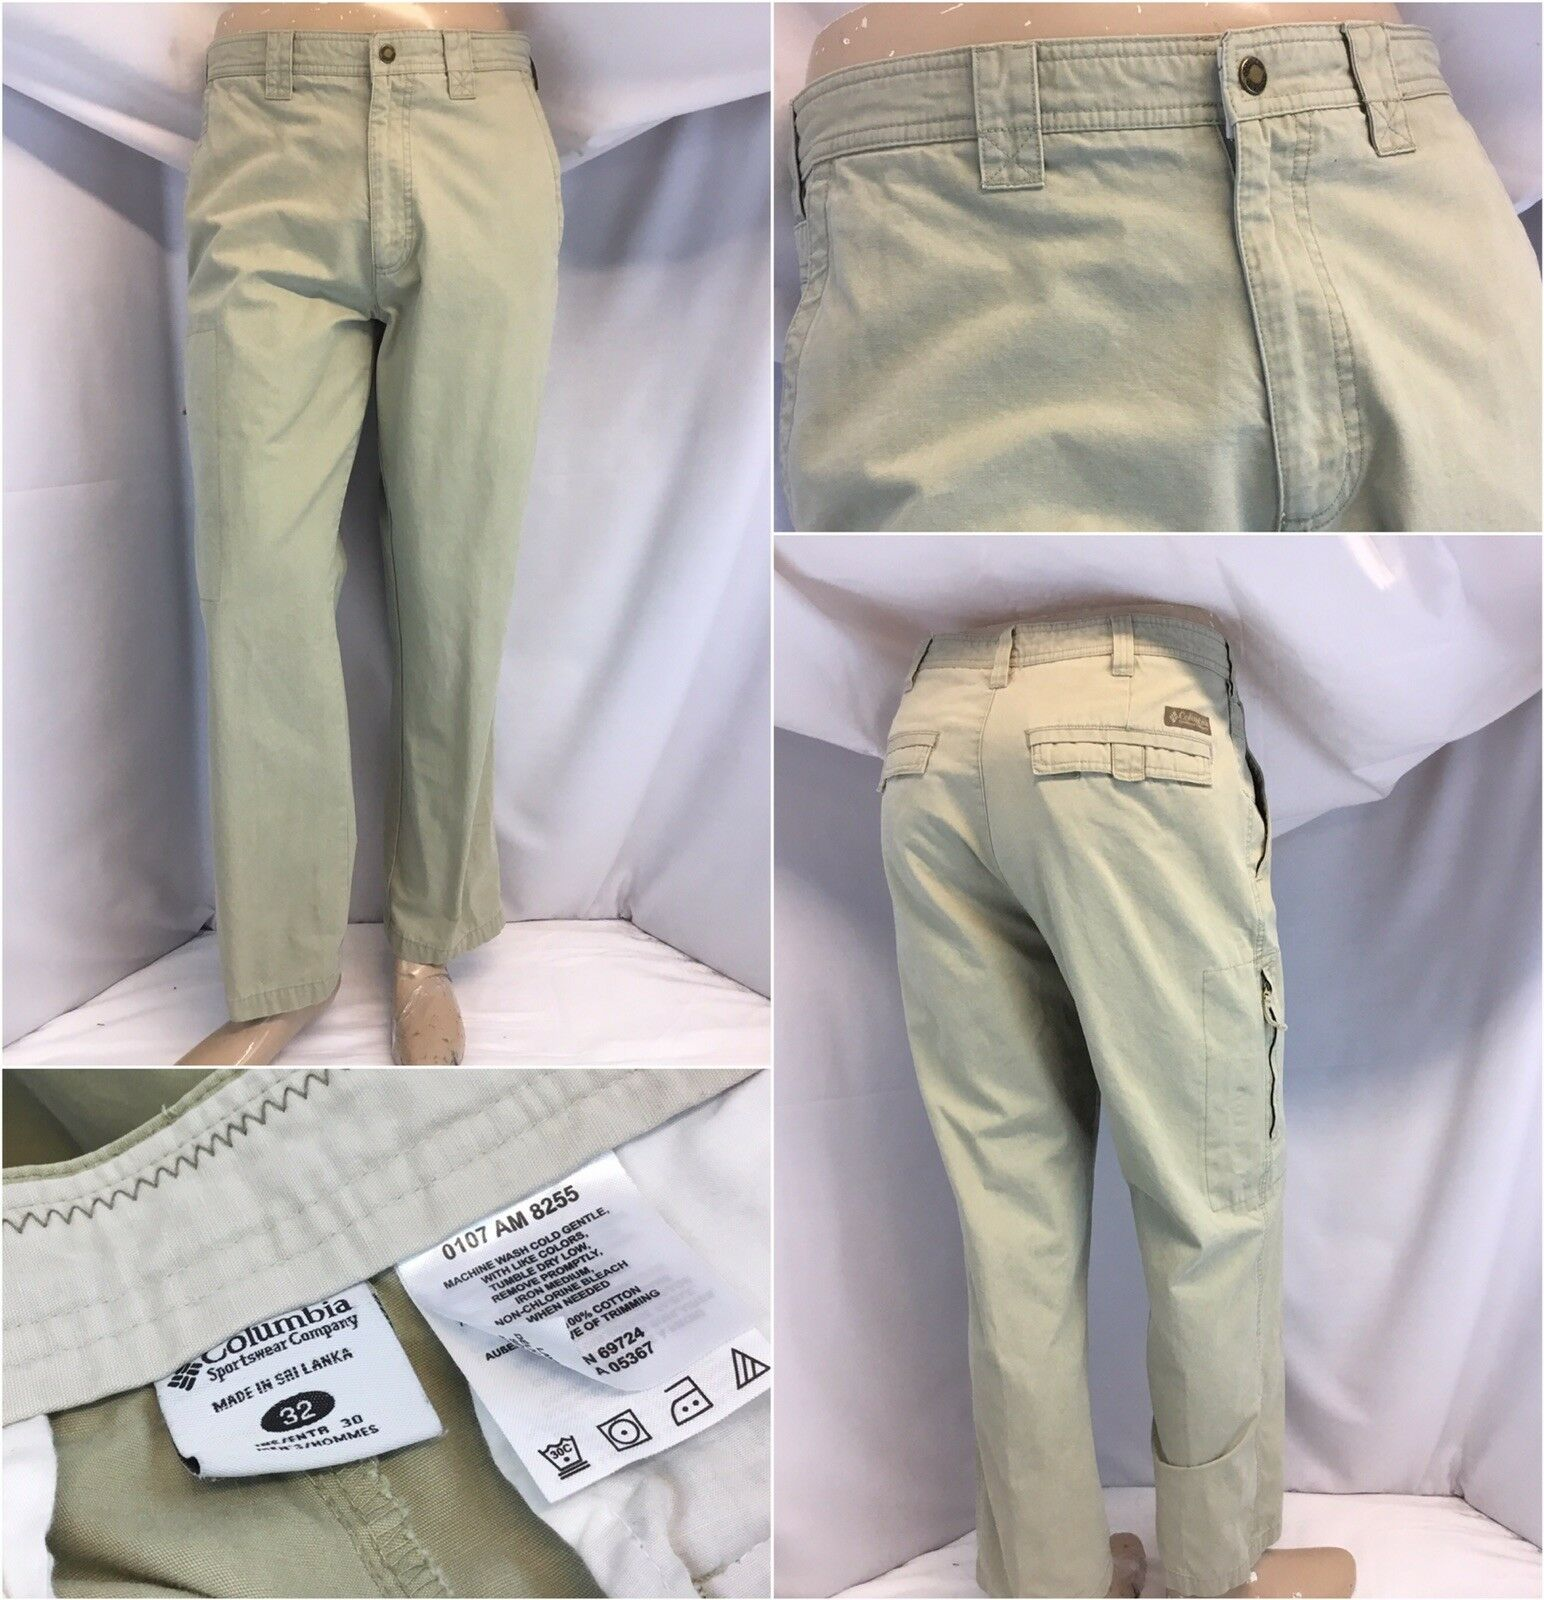 Columbia Pants 32x30 Tan 100% Cotton Flat Front Worn Once YGI L8-339